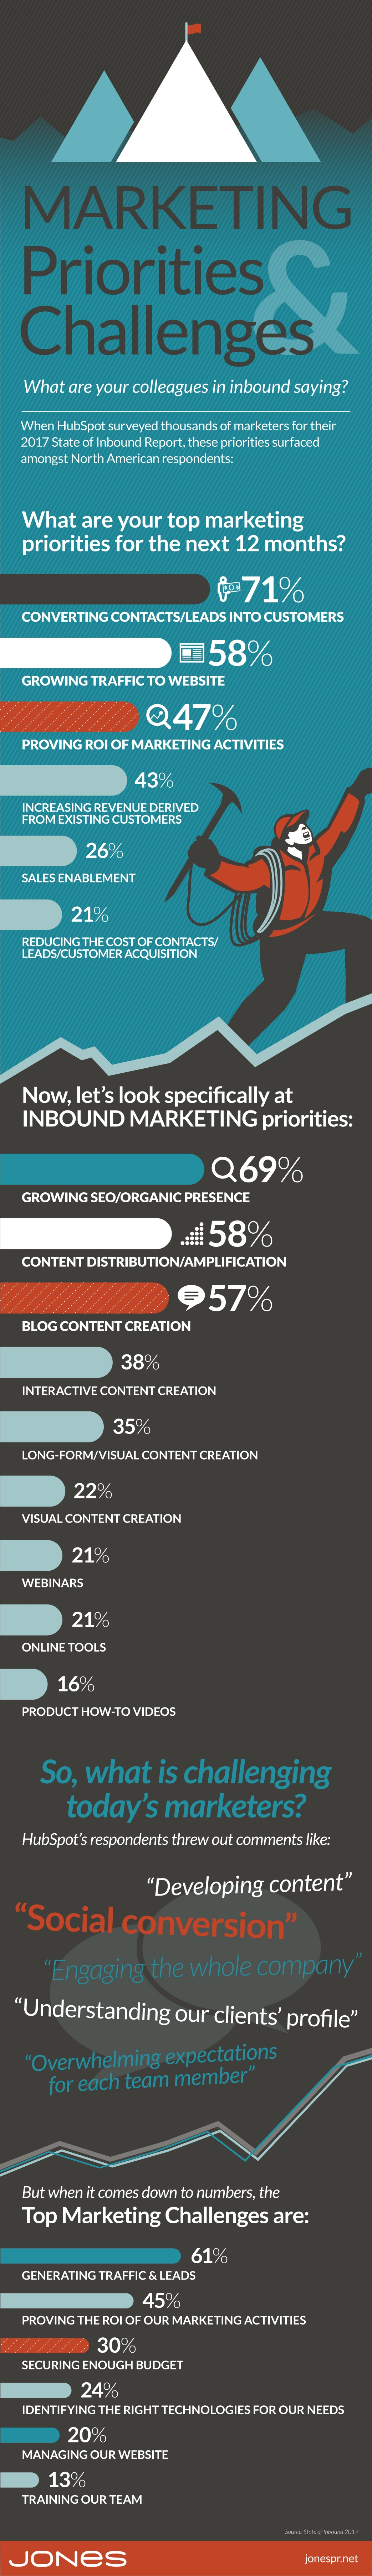 jones-marketing-priorities-challenges-2017.jpg